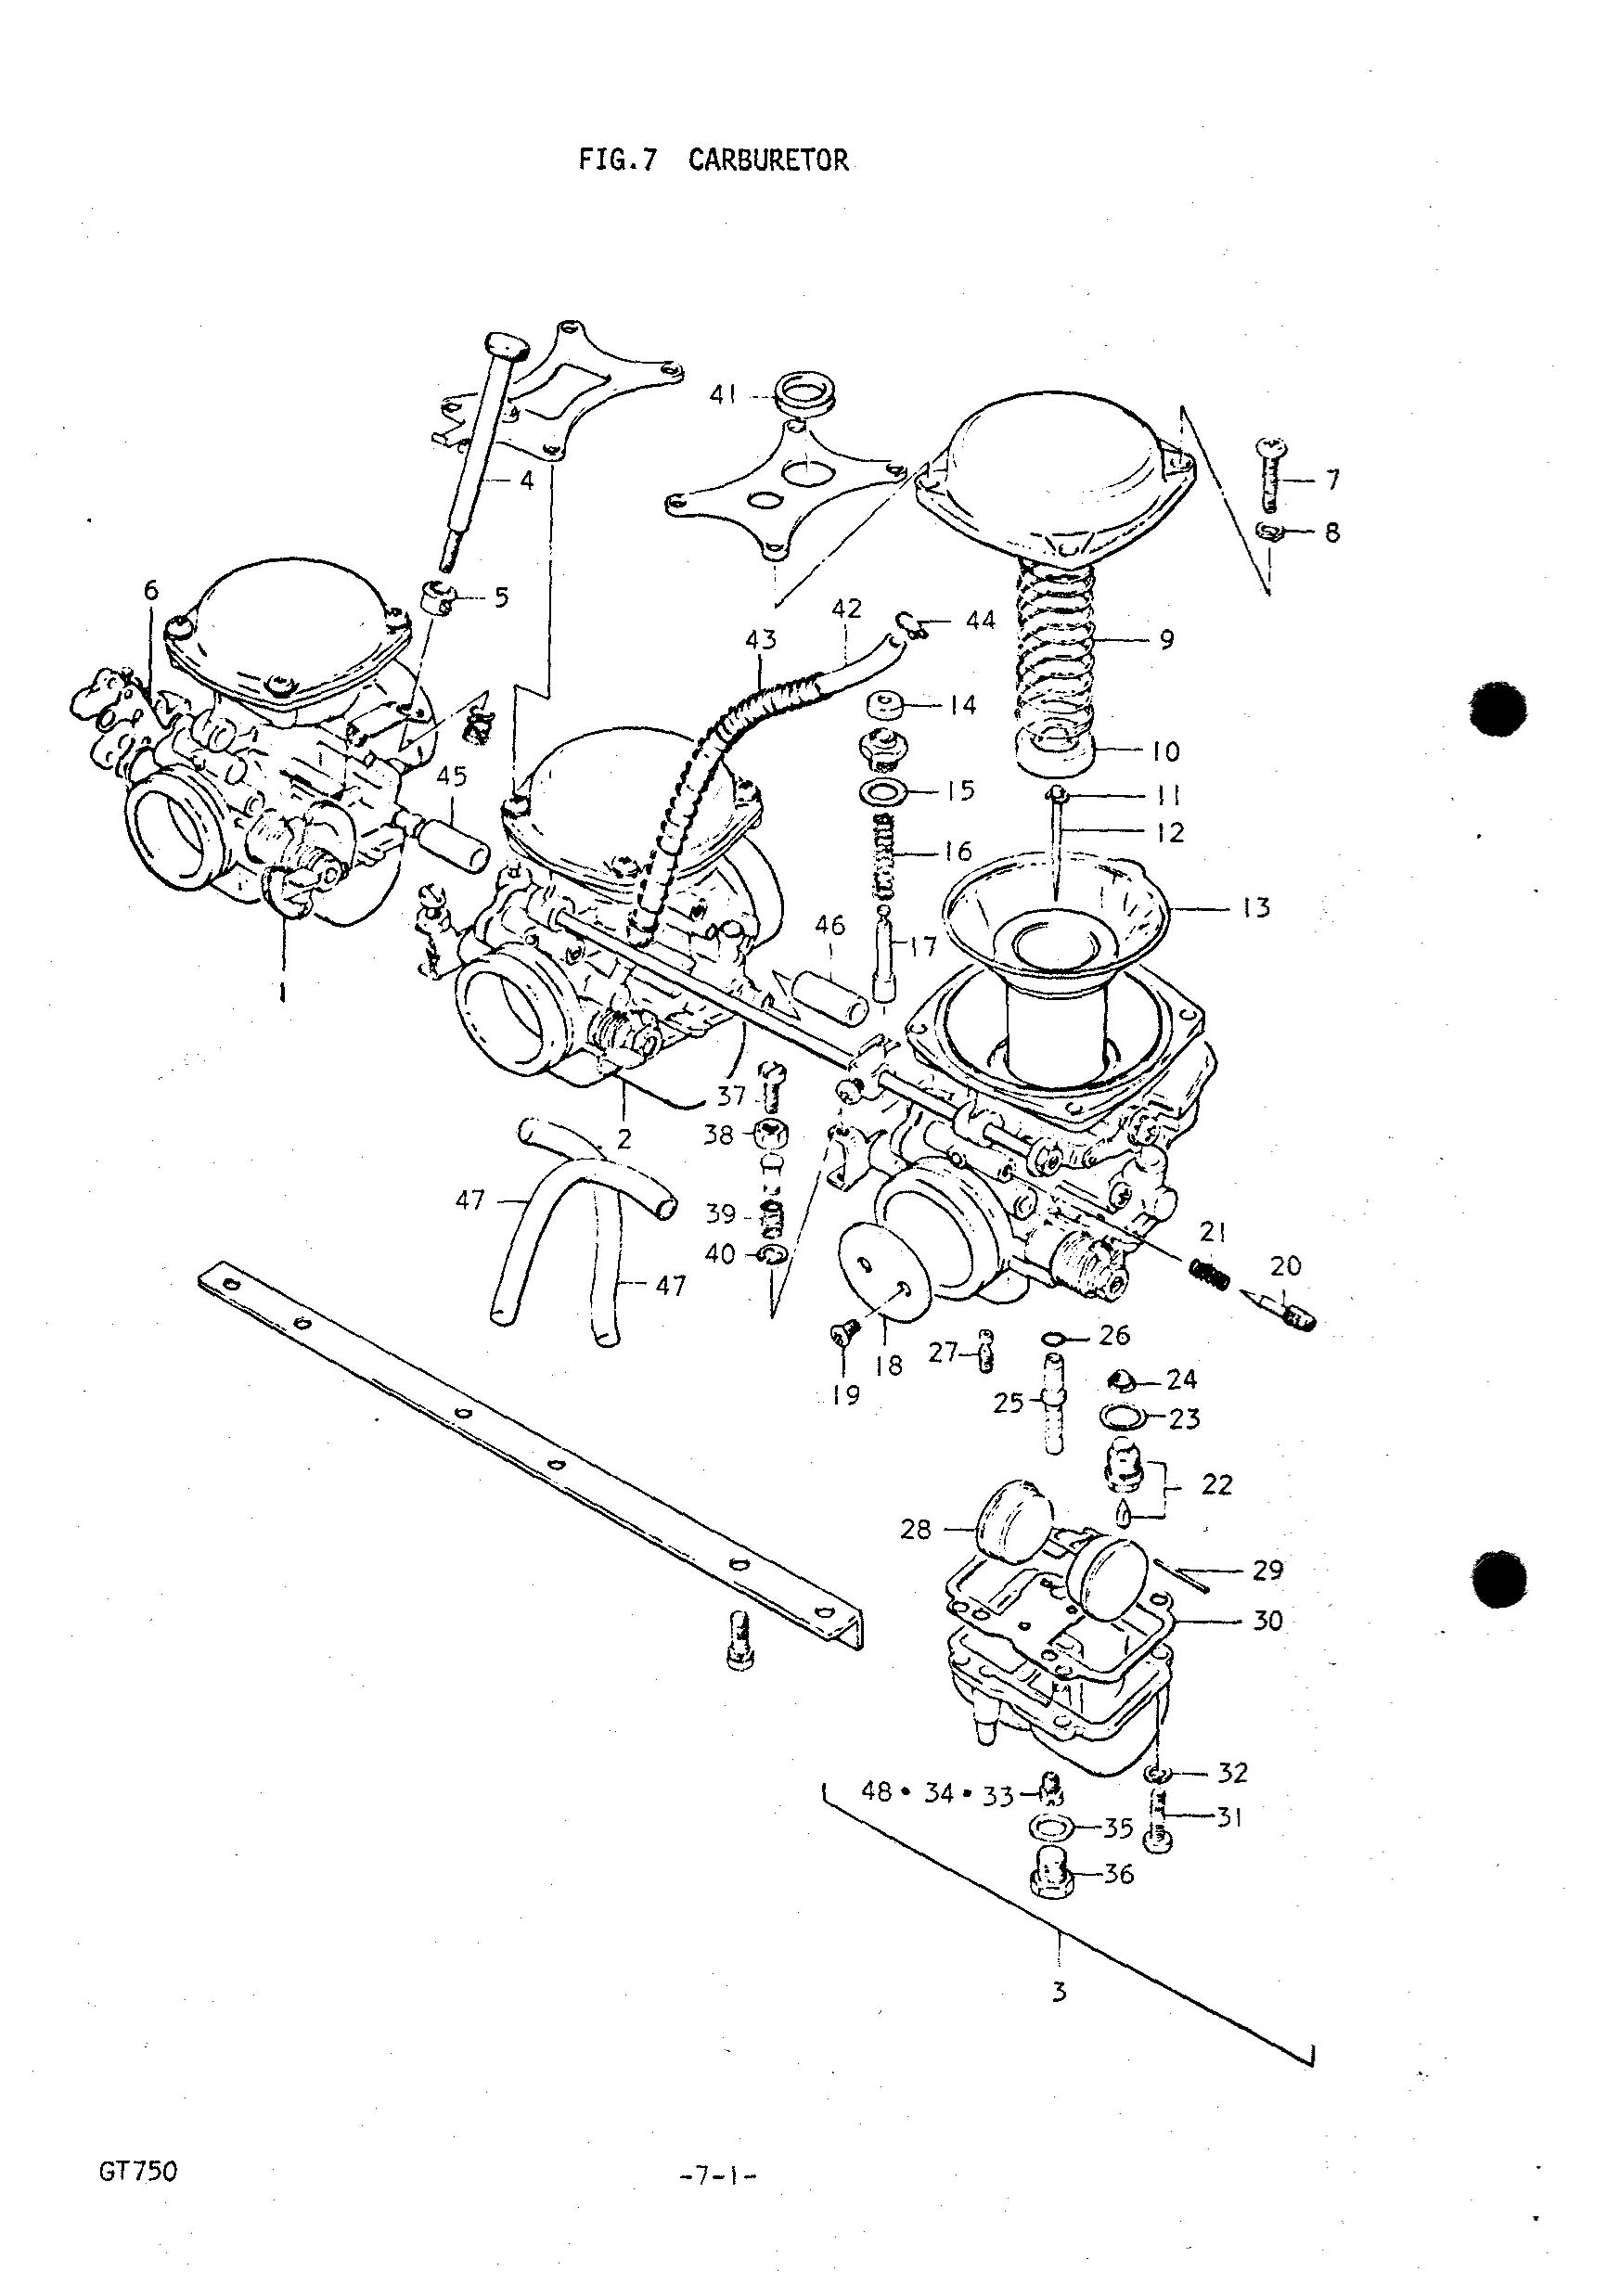 Yamaha 1000 1100 1800 Steering Cable P98425 besides Shim kits fit sd309    fig  no  25 furthermore 555130 besides Amide Kazuma Keihin Carburator besides rrcperformanceengines. on jet engine kits for sale